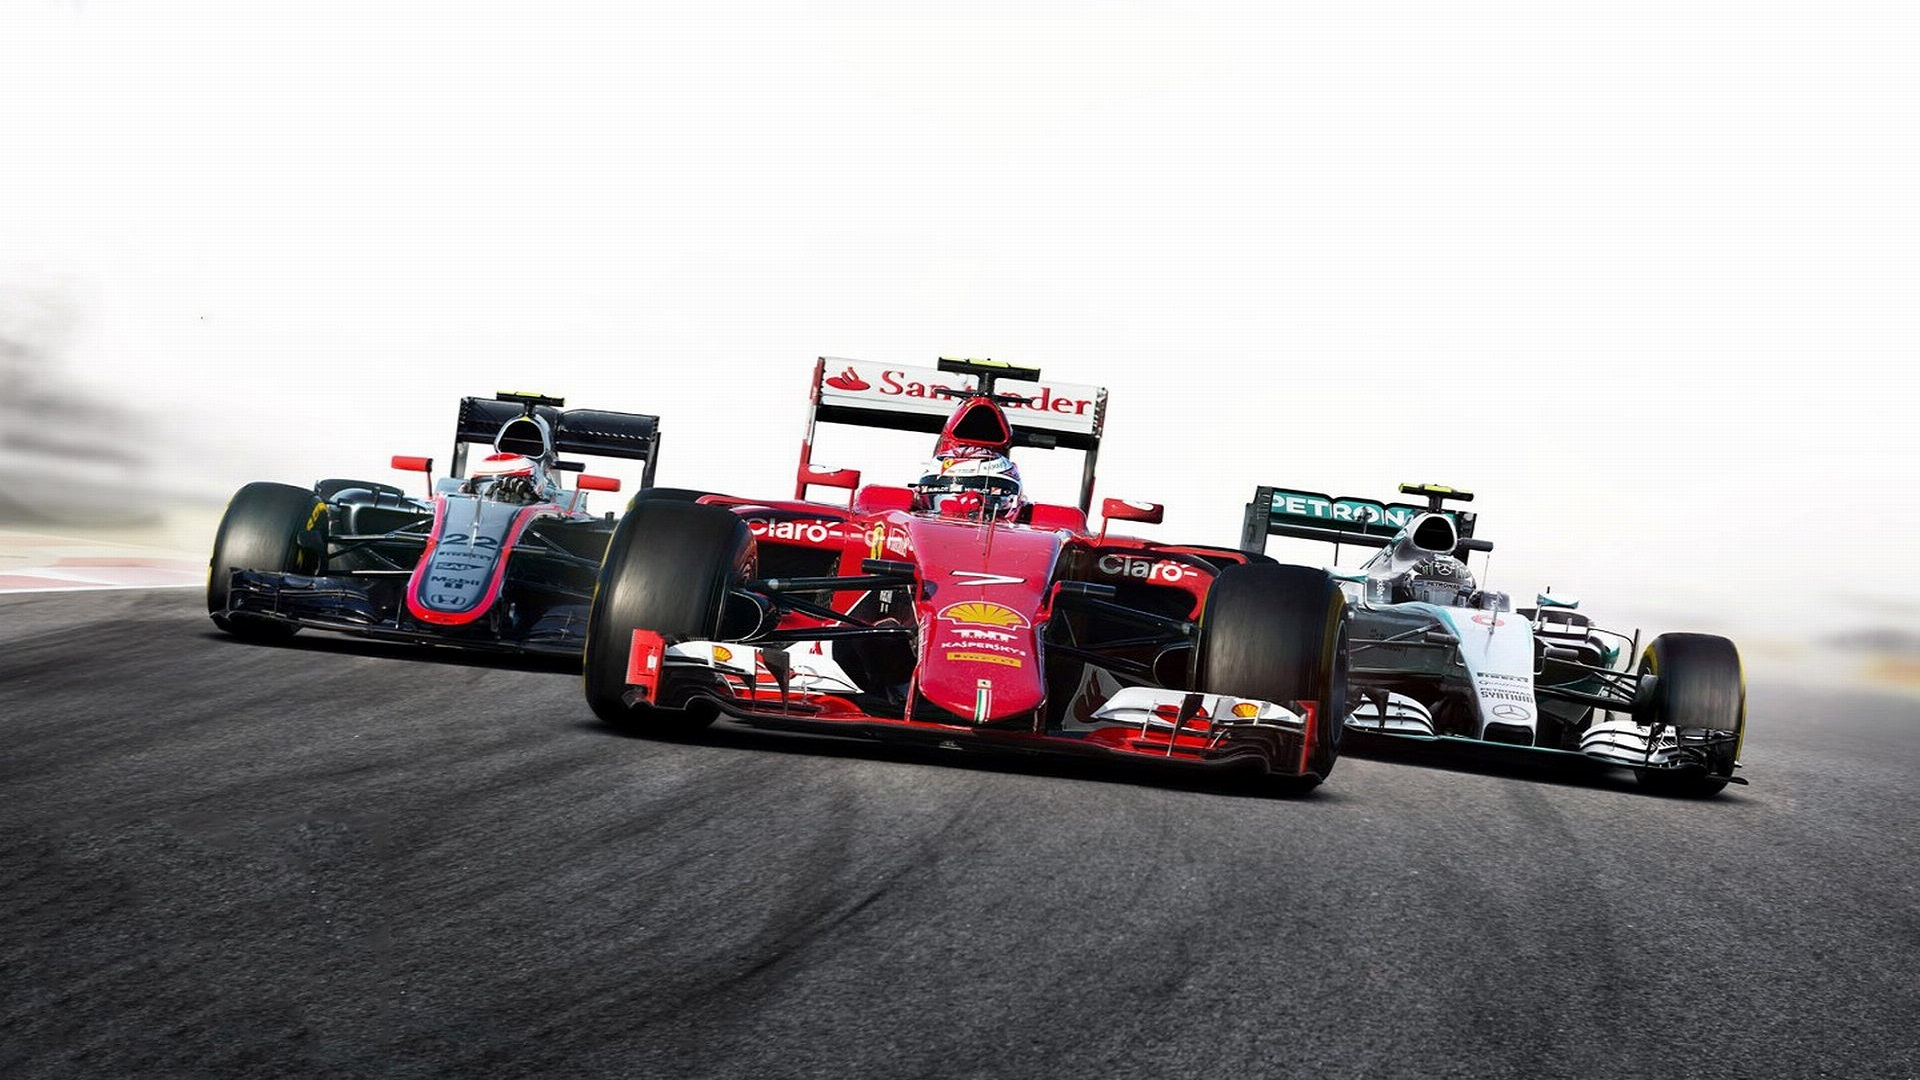 How to Watch Formula 1 Online for Free  Streaming Options